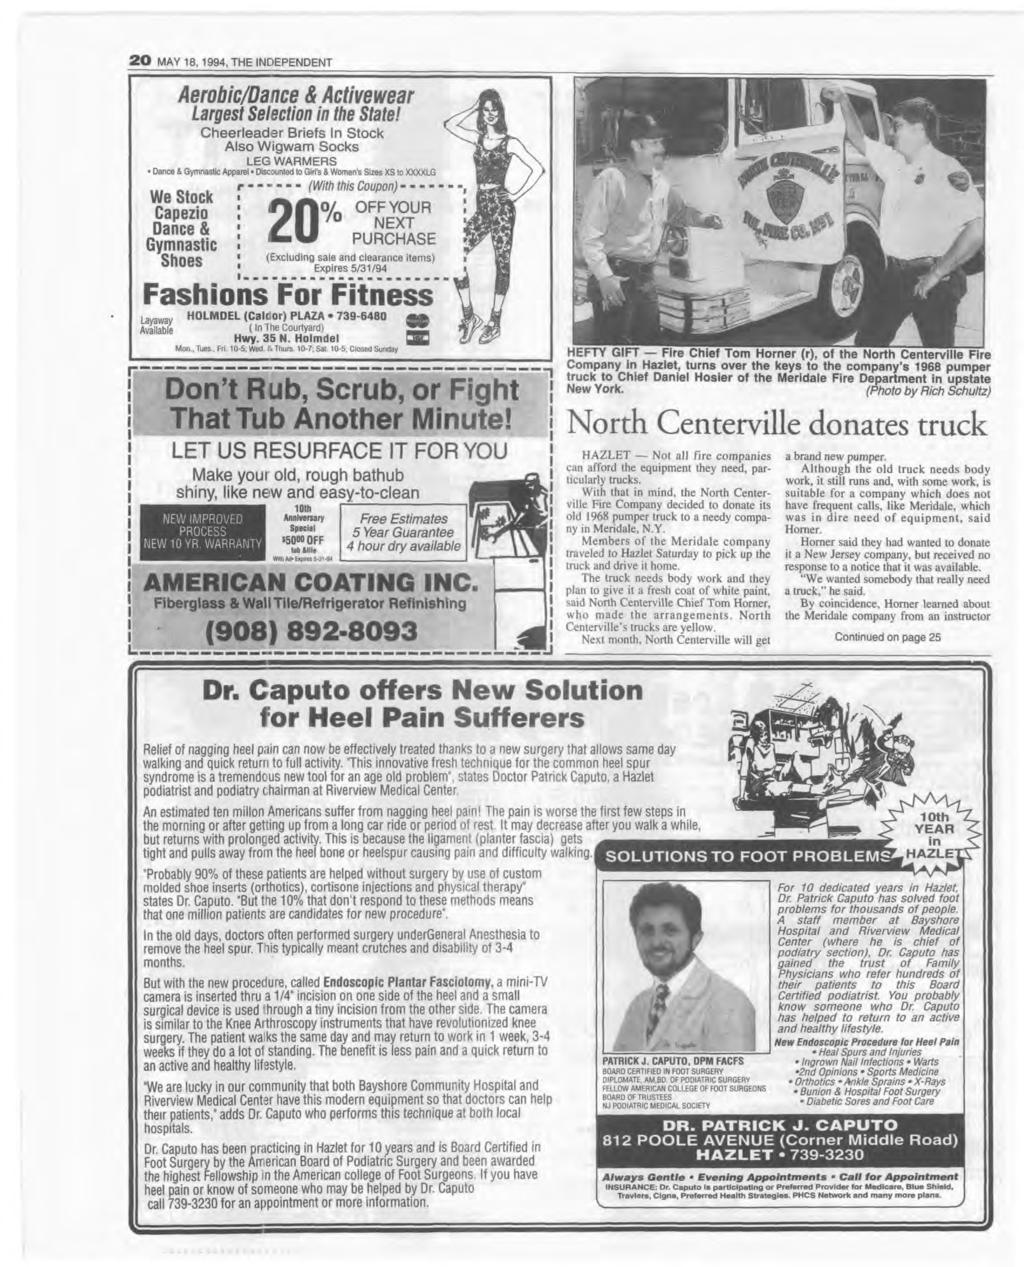 Astate Arbitrator Has Been Pdf Minimal Mosa Mixed Top Navy Xs 2 0 May 18 1994 The Independent Aerobic Dance Activewear Largest Selection